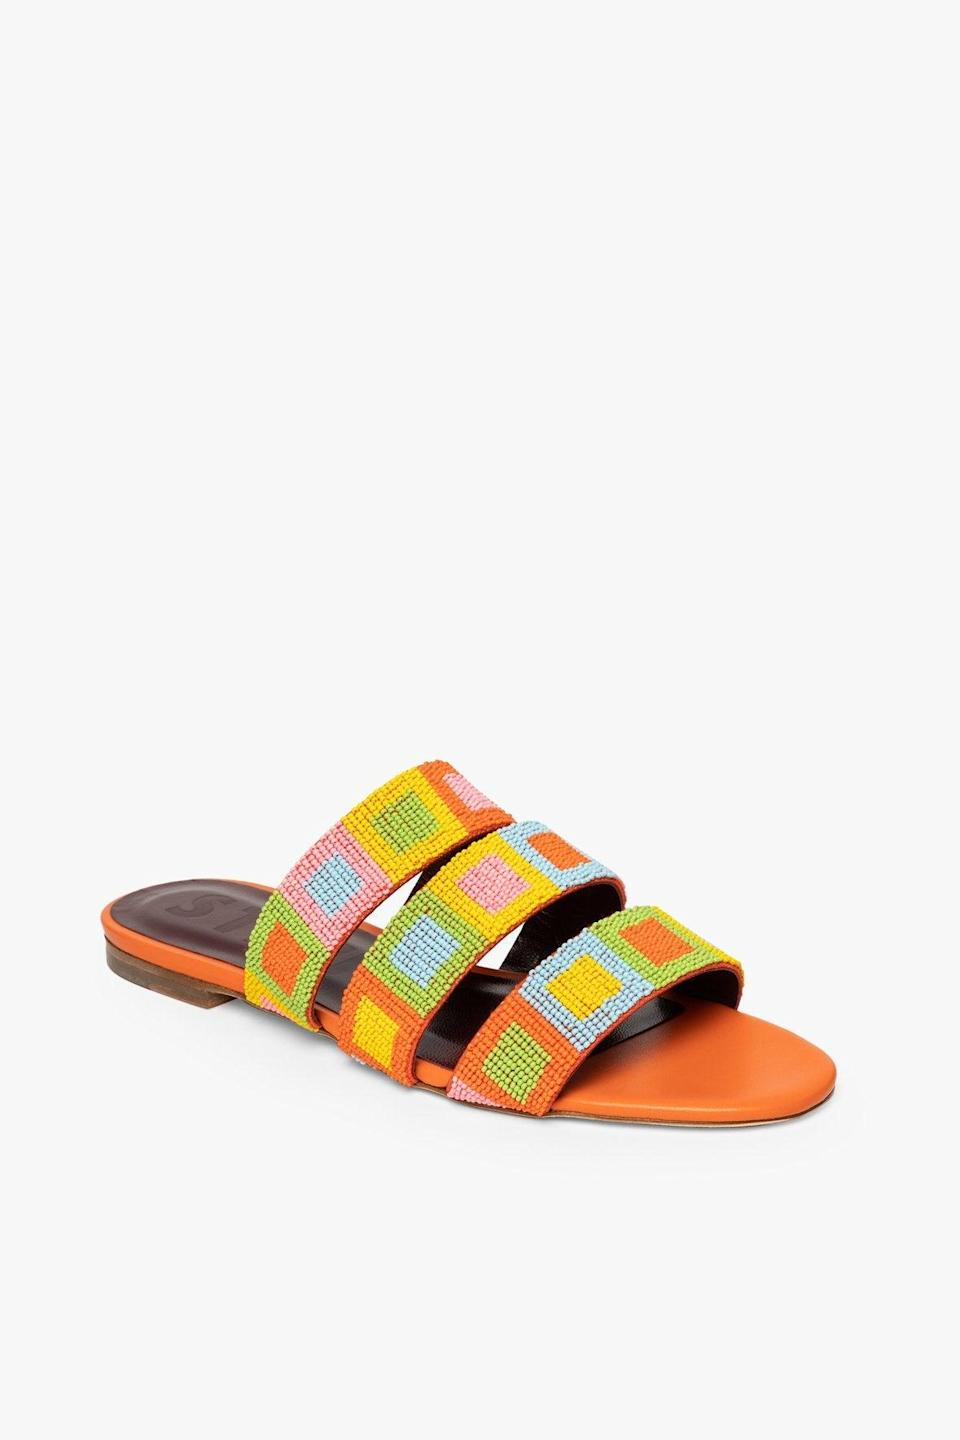 """<br><br><strong>Staud</strong> Mona Beaded Sandal, $, available at <a href=""""https://go.skimresources.com/?id=30283X879131&url=https%3A%2F%2Fstaud.clothing%2Fcollections%2Fspring-21%2Fproducts%2Fmona-beaded-sandal-nectarine-multi-bead%3Fvariant%3D39324184969389"""" rel=""""nofollow noopener"""" target=""""_blank"""" data-ylk=""""slk:Staud"""" class=""""link rapid-noclick-resp"""">Staud</a>"""